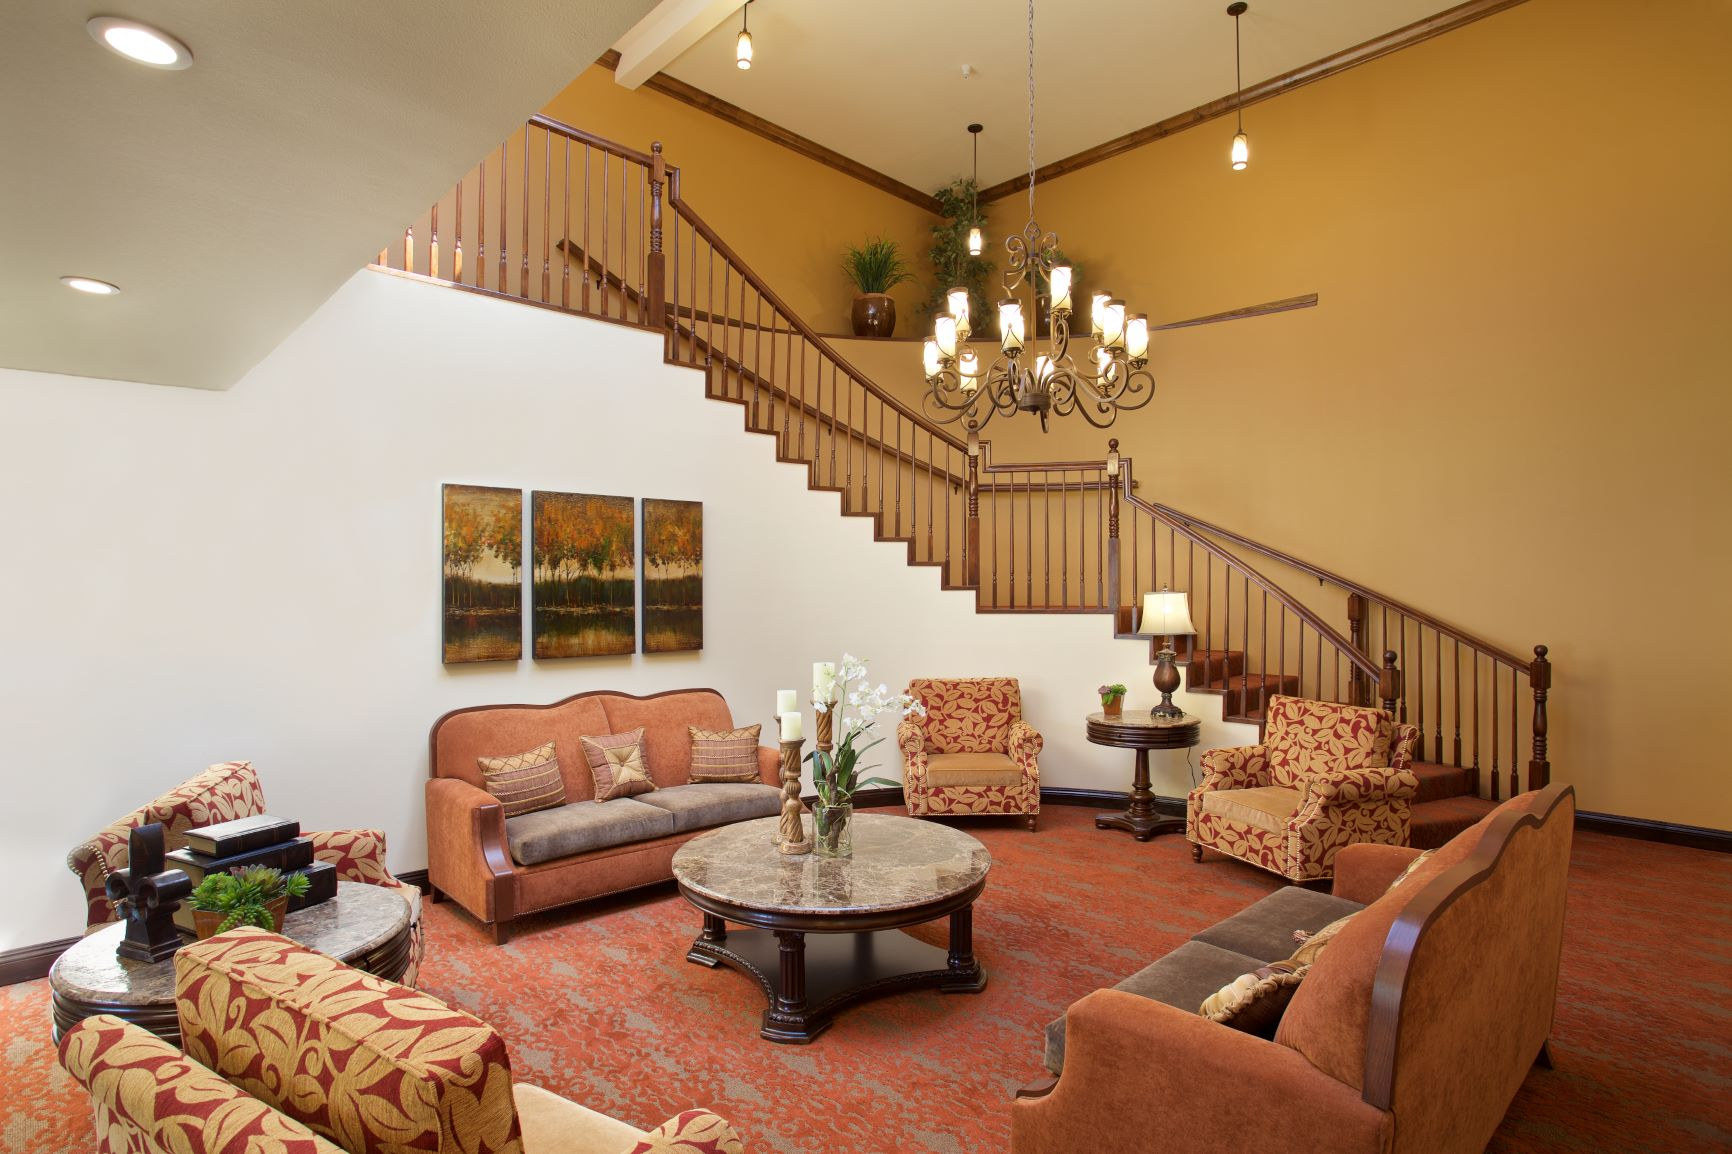 The relaxing luxury of Pacifica Senior Living Escondido.